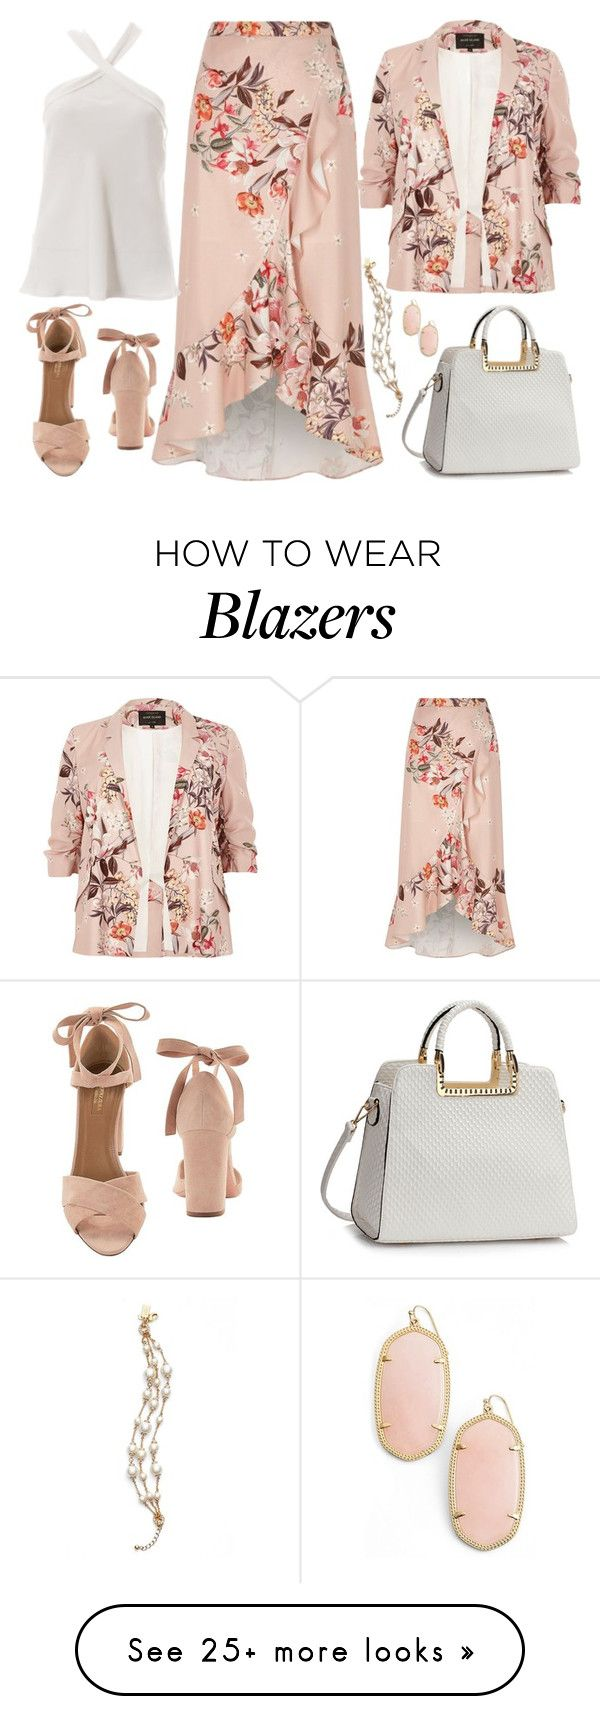 """Untitled #3281"" by emmafazekas on Polyvore featuring River Island, Aquazzura, Kendra Scott and Kate Spade"